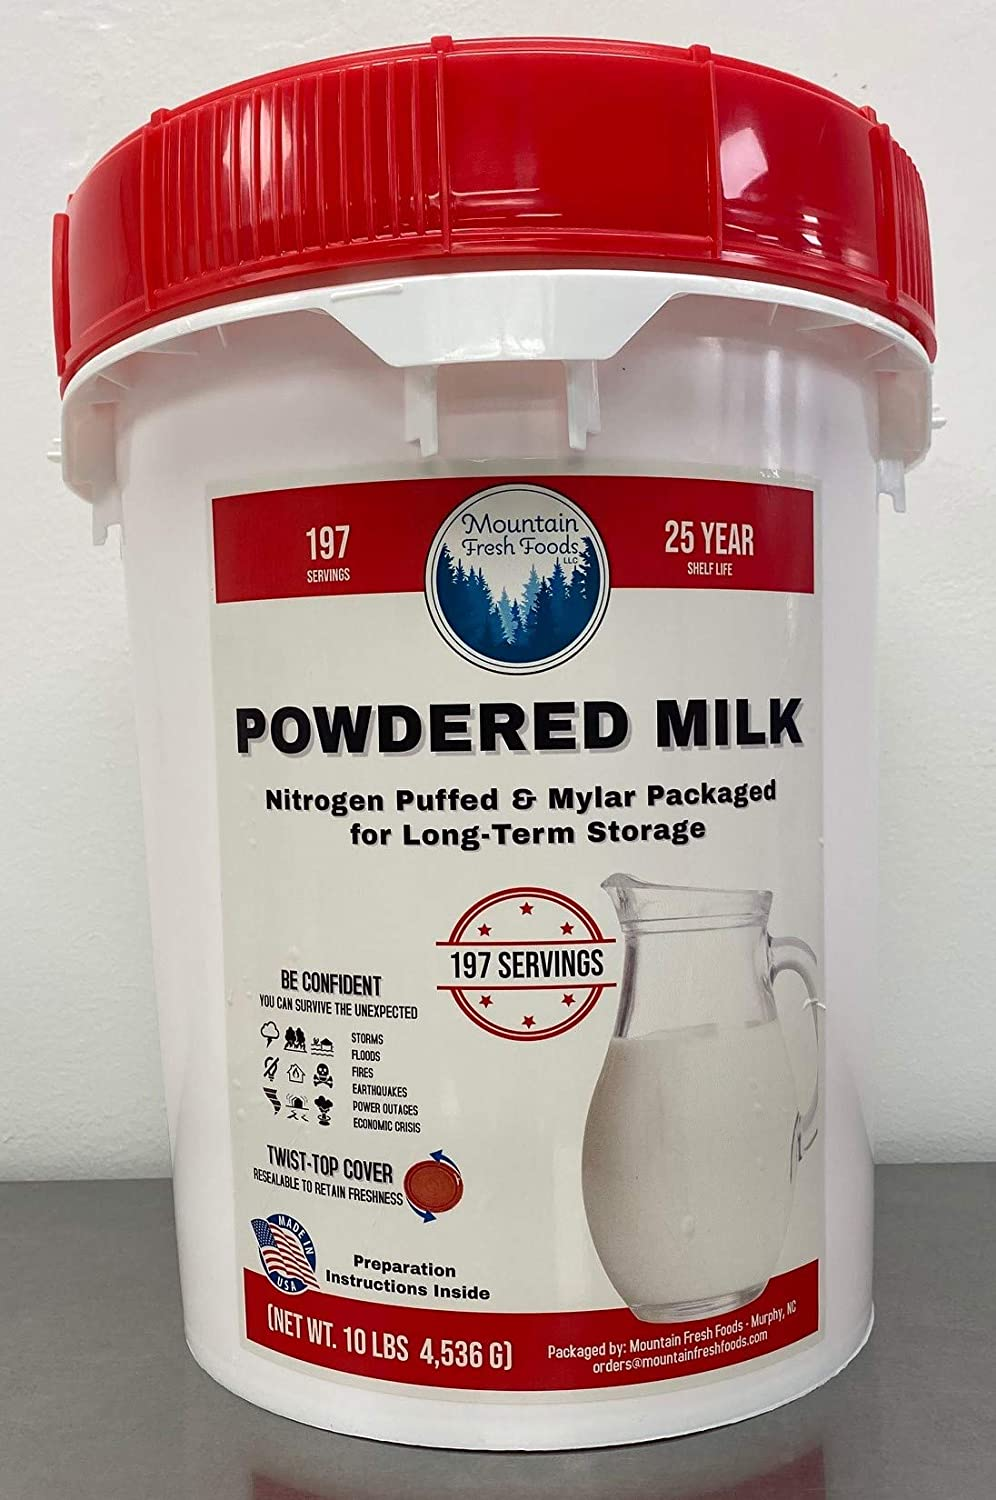 Powdered Non-Fat Milk 10 lbs in a LifeLatch 5 Gal Bucket for Survival Emergency Food Rations MRE